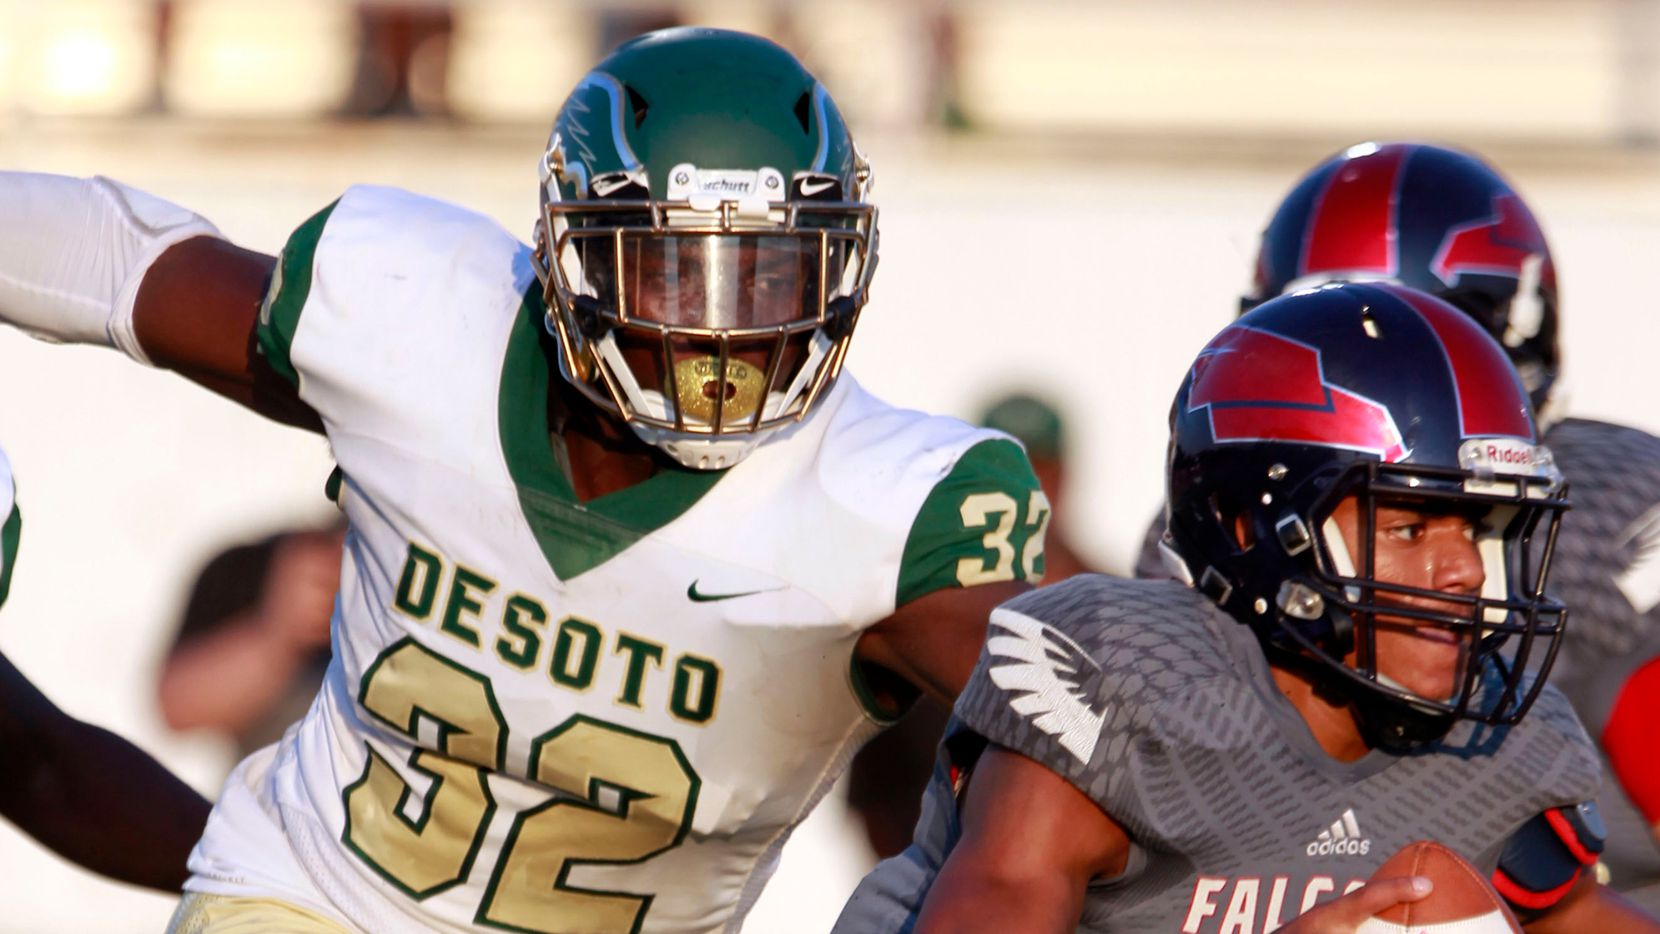 DeSoto defensive lineman Shemar Turner (32) chases down Bishop Dunne quarterback Simeon Evans (1) during a game at Sprague Stadium in Dallas on Saturday, September 14, 2019.  Turner is one of six DeSoto players ranked in The Dallas Morning News' Area Top 100 for the Class of 2021, the most of any school.